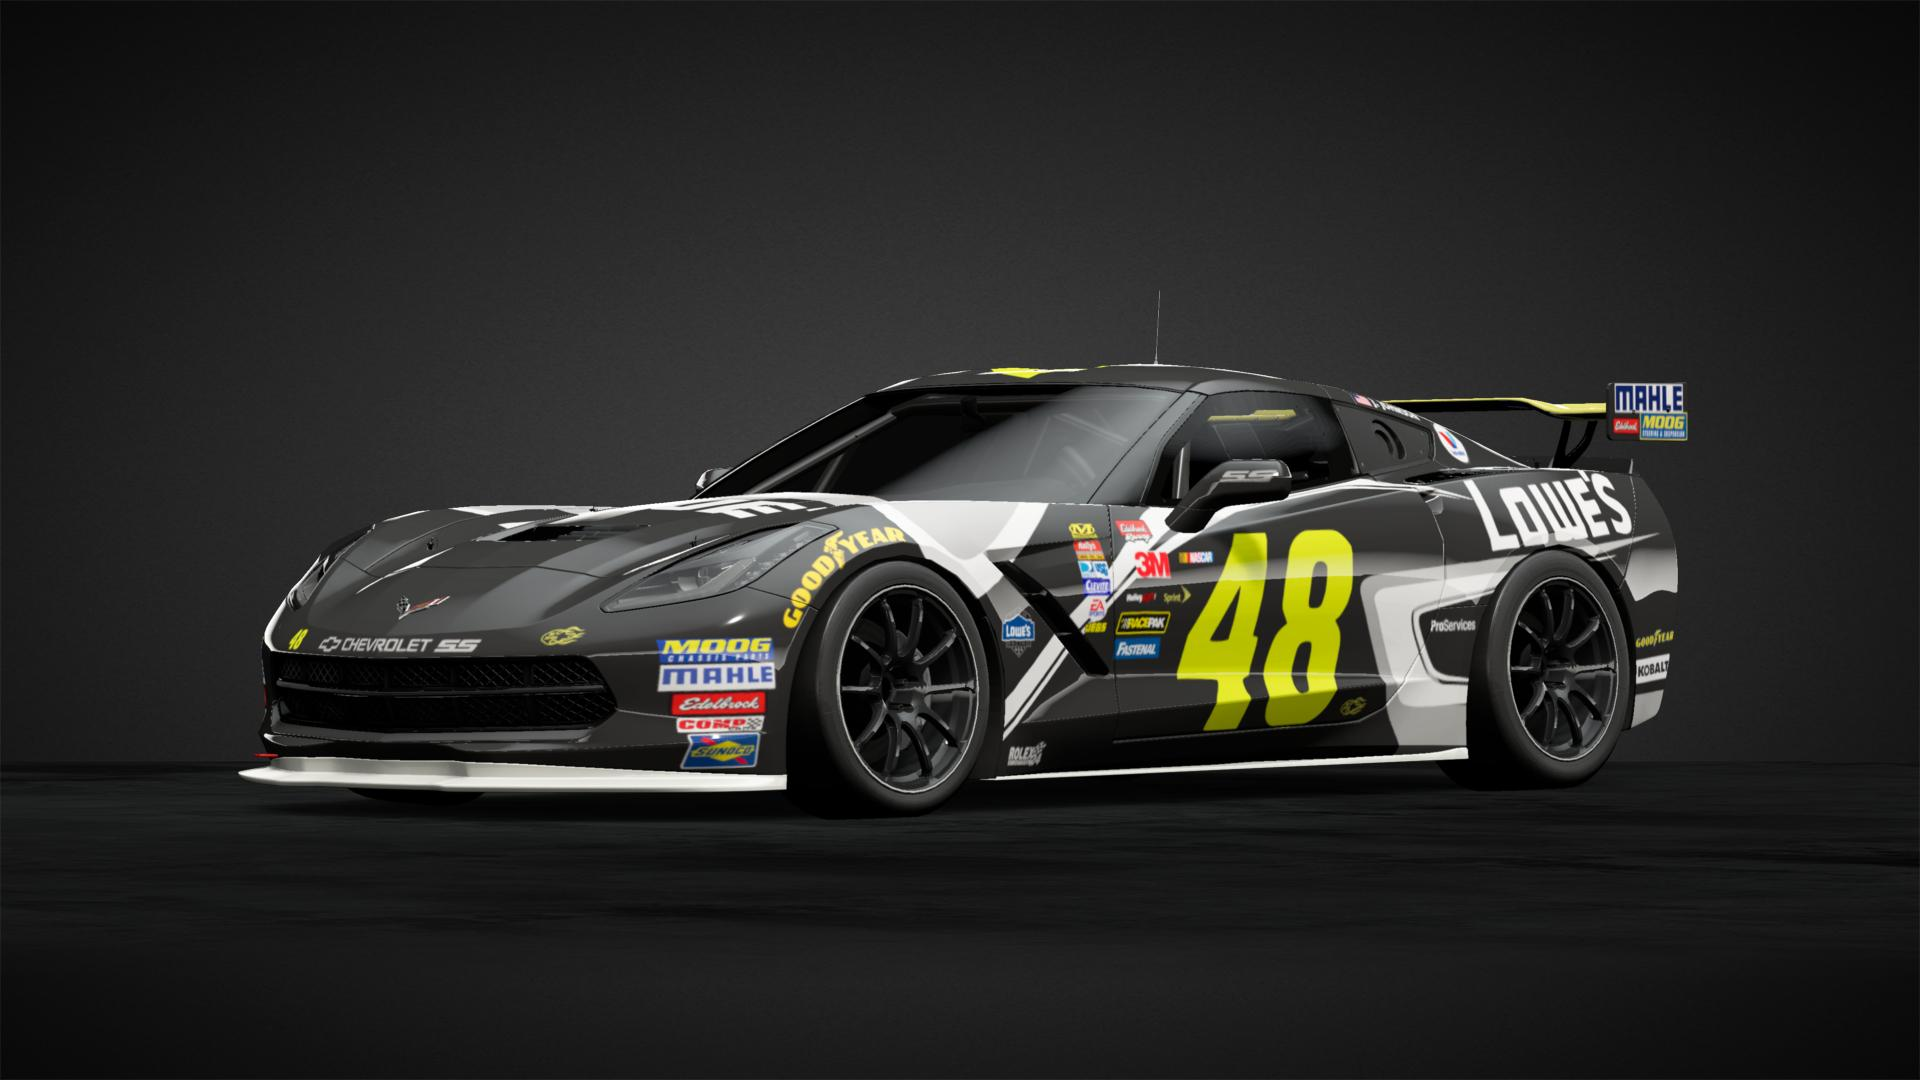 Chevrolet 48 Team Lowes Black Car Livery By Yakson87 Community Gran Turismo Sport